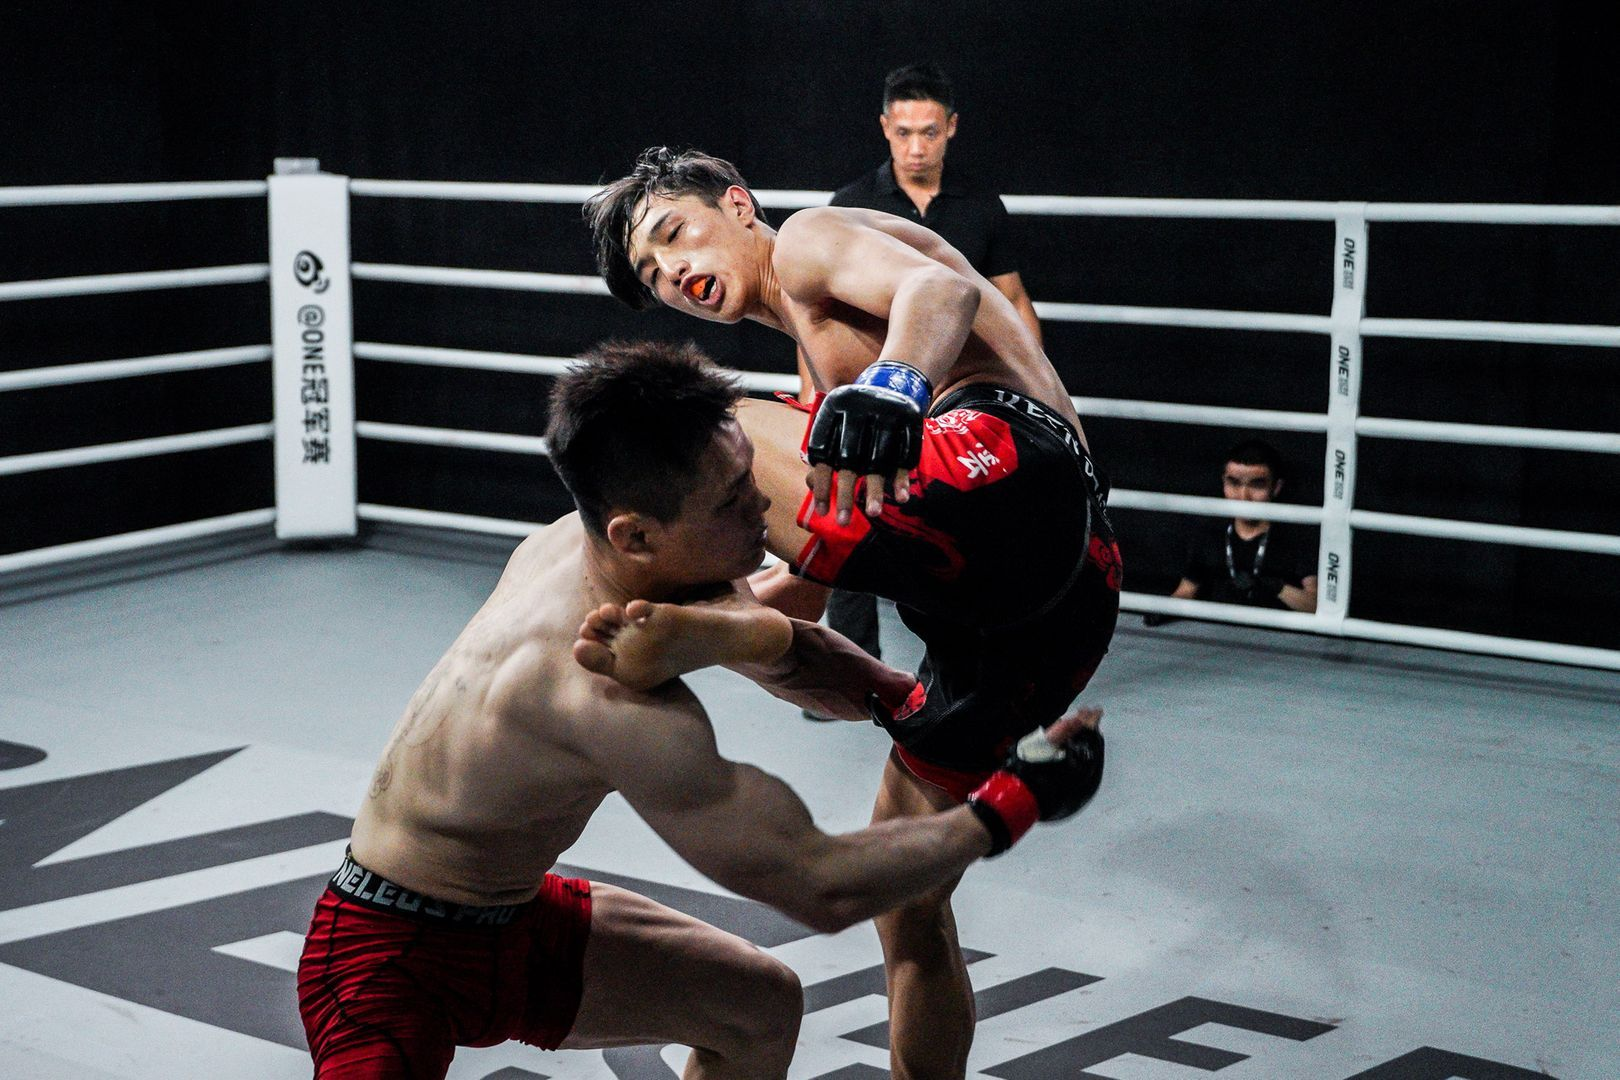 Chinese mixed martial arts prospect Luo Zhou Jiang Cuo